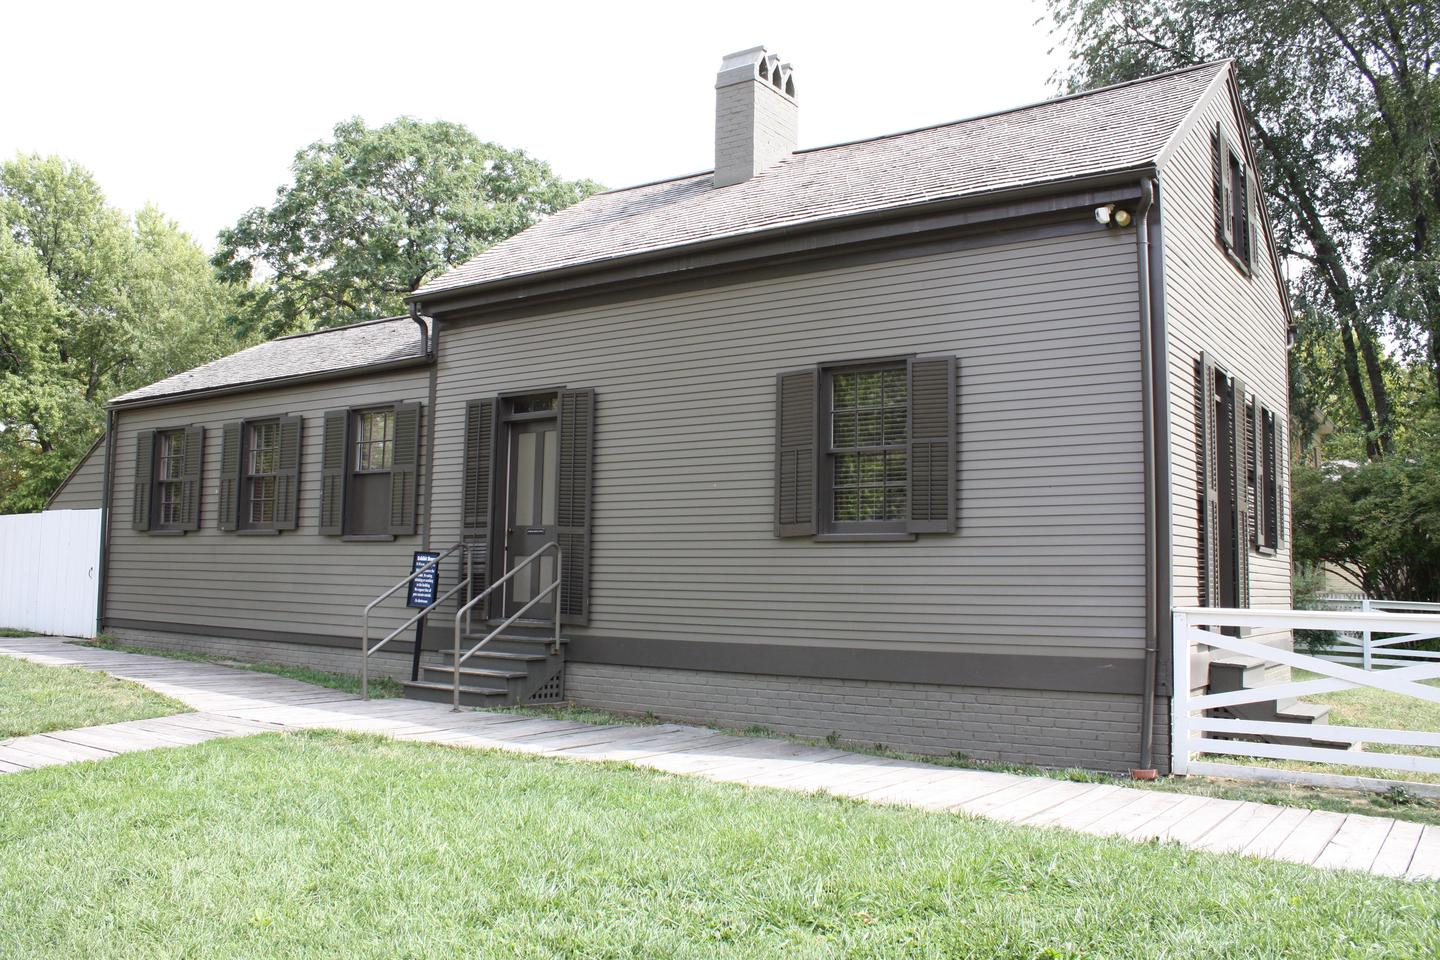 Arnold HouseExhibits in the Arnold House explore historic preservation of the neighborhood